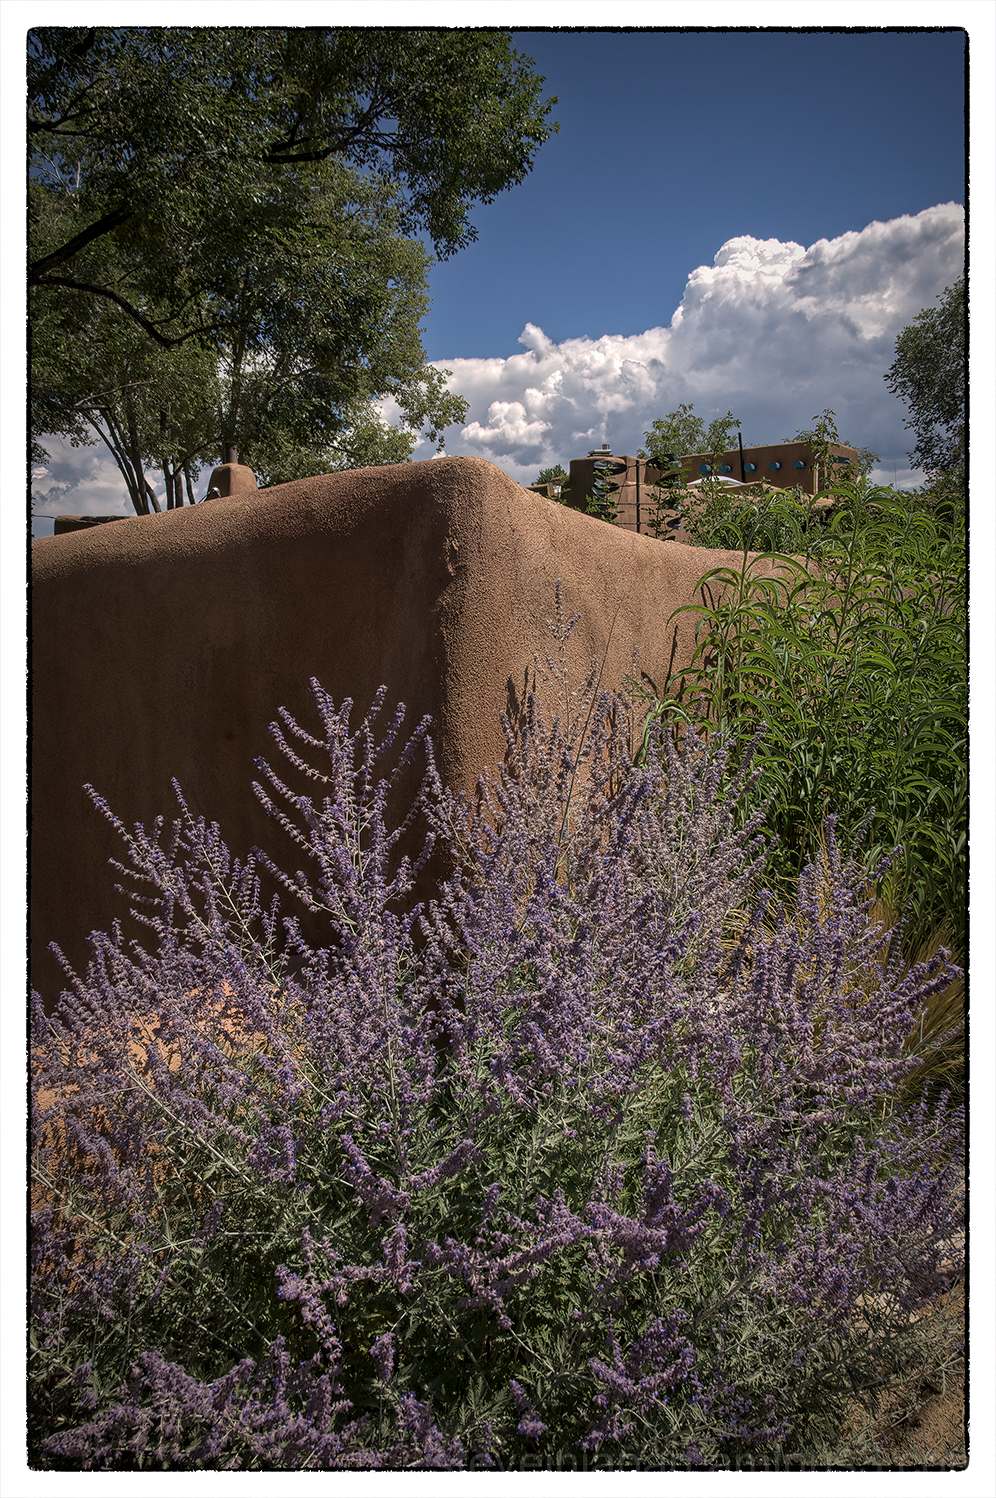 Lavender & wall in Taos, New Mexico.